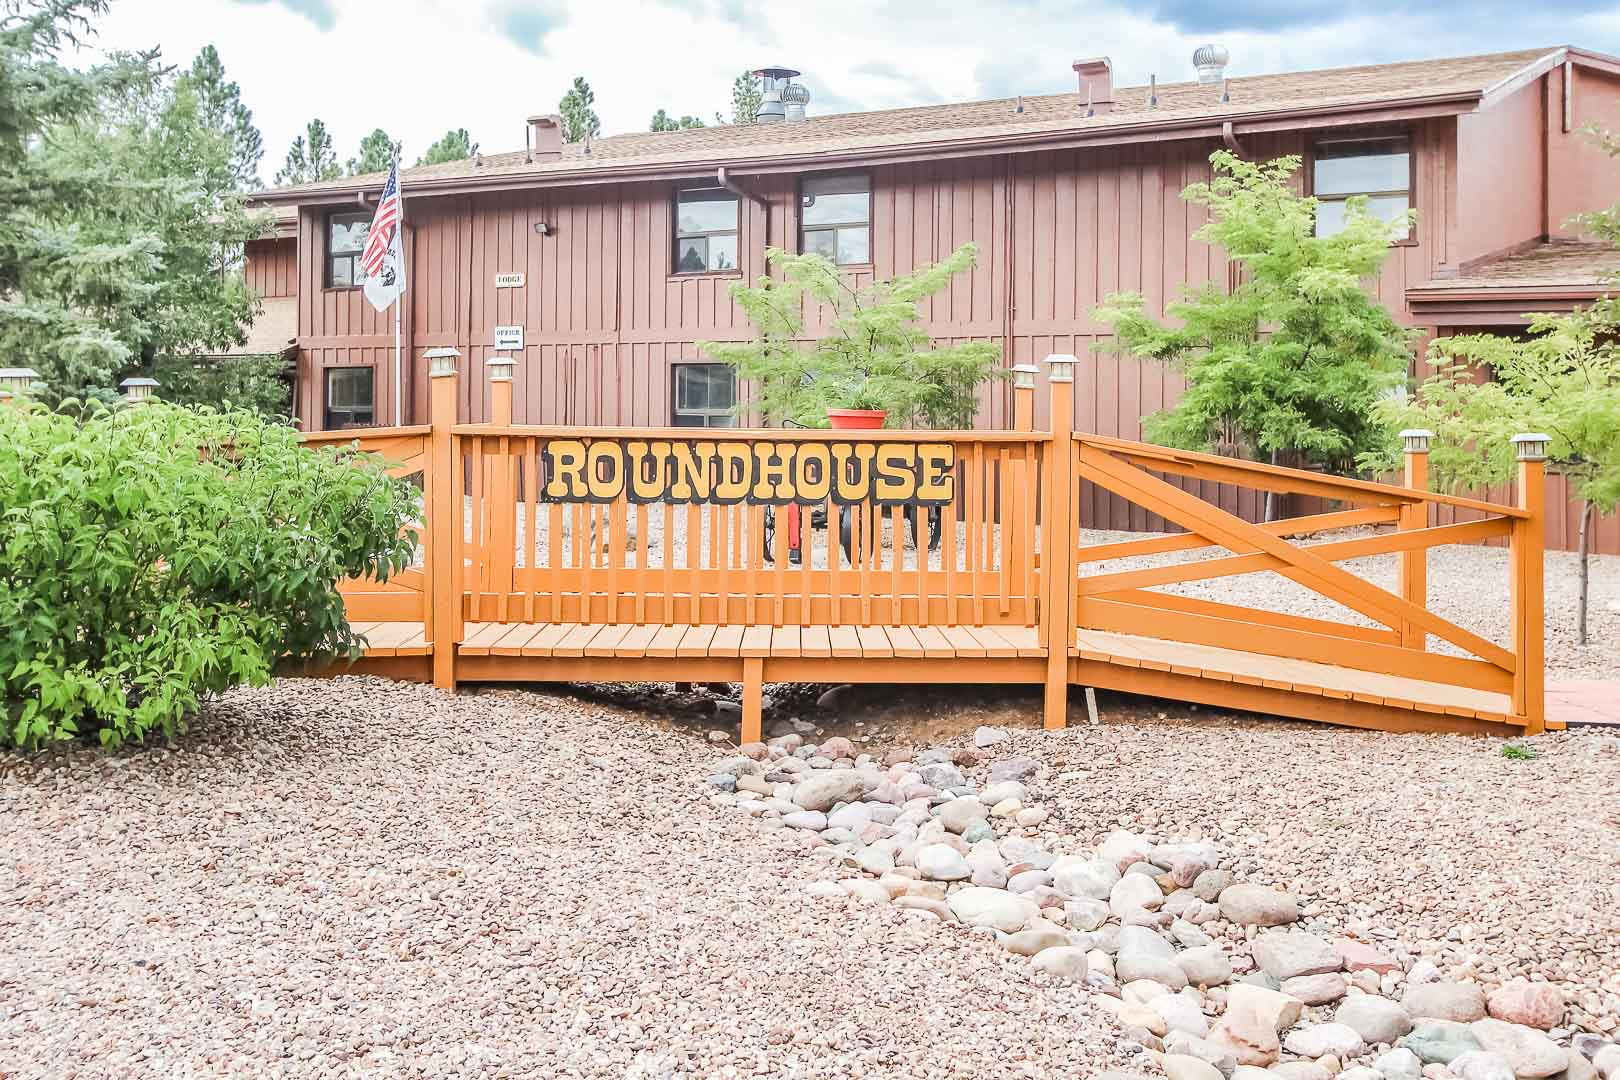 A welcoming resort entrance at VRI's Roundhouse Resort in Pinetop, Arizona.